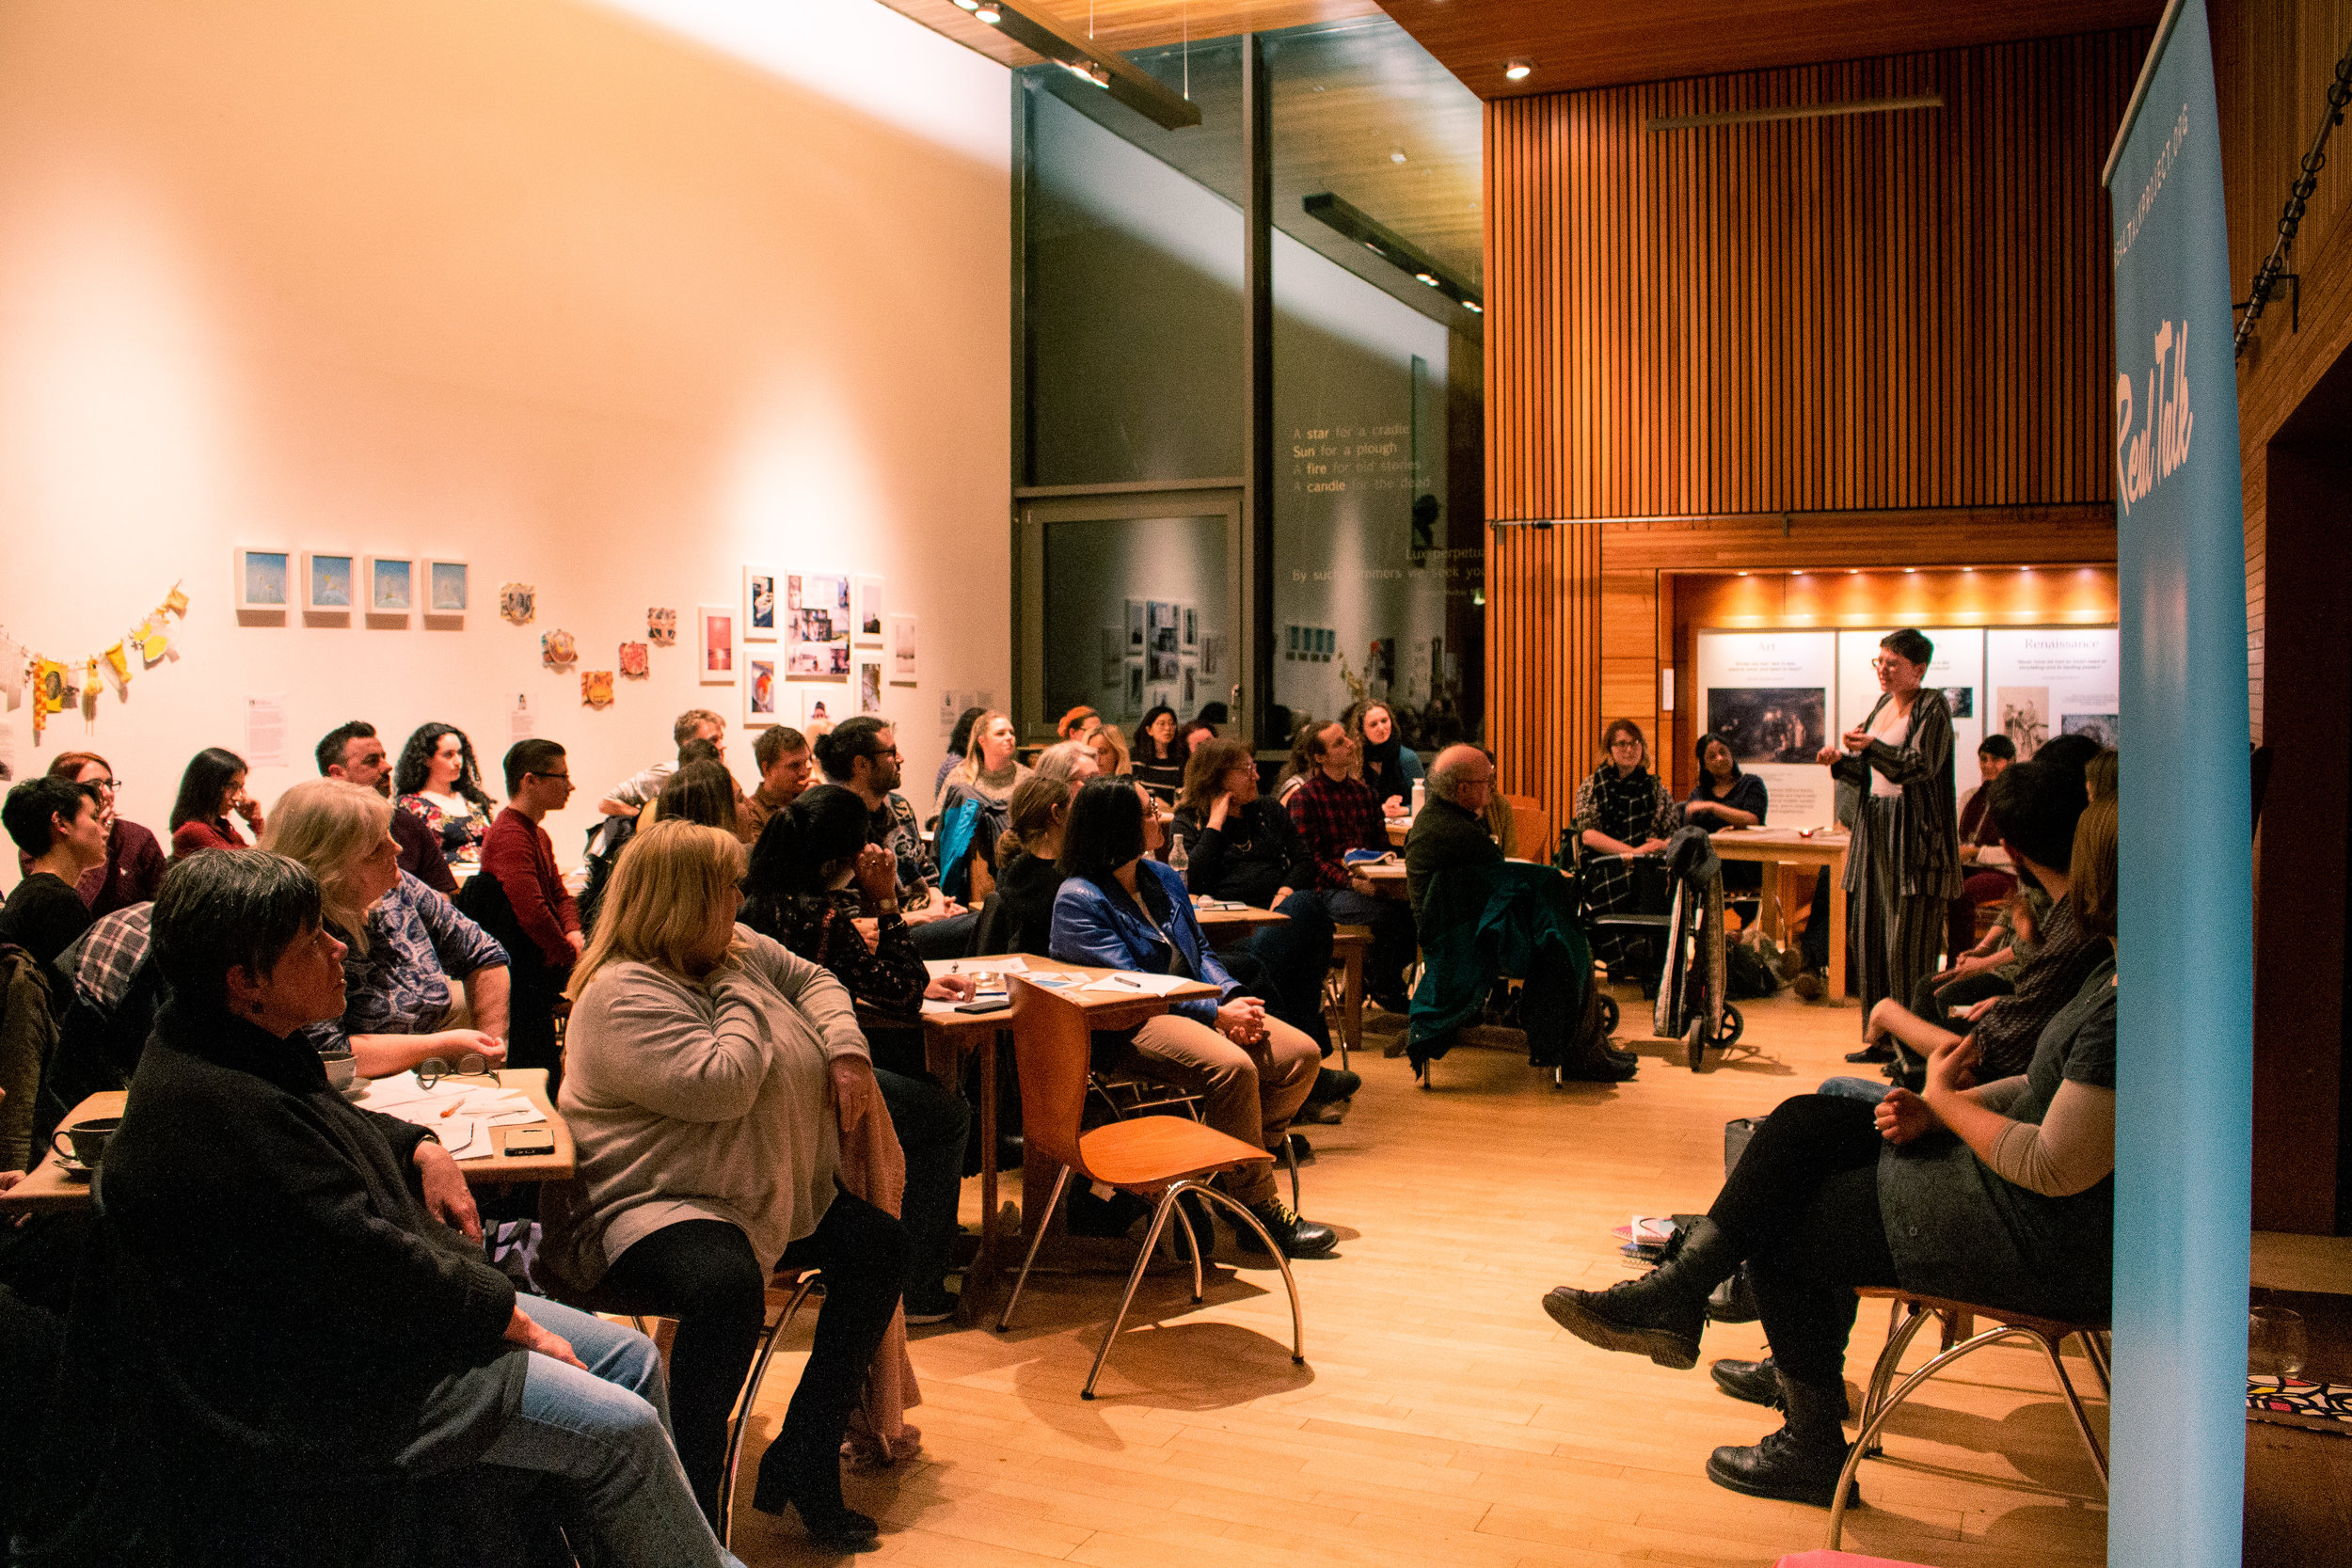 Real Talk Storytelling for Wellbeing event at the Scottish Storytelling Centre - 28th February 2019.